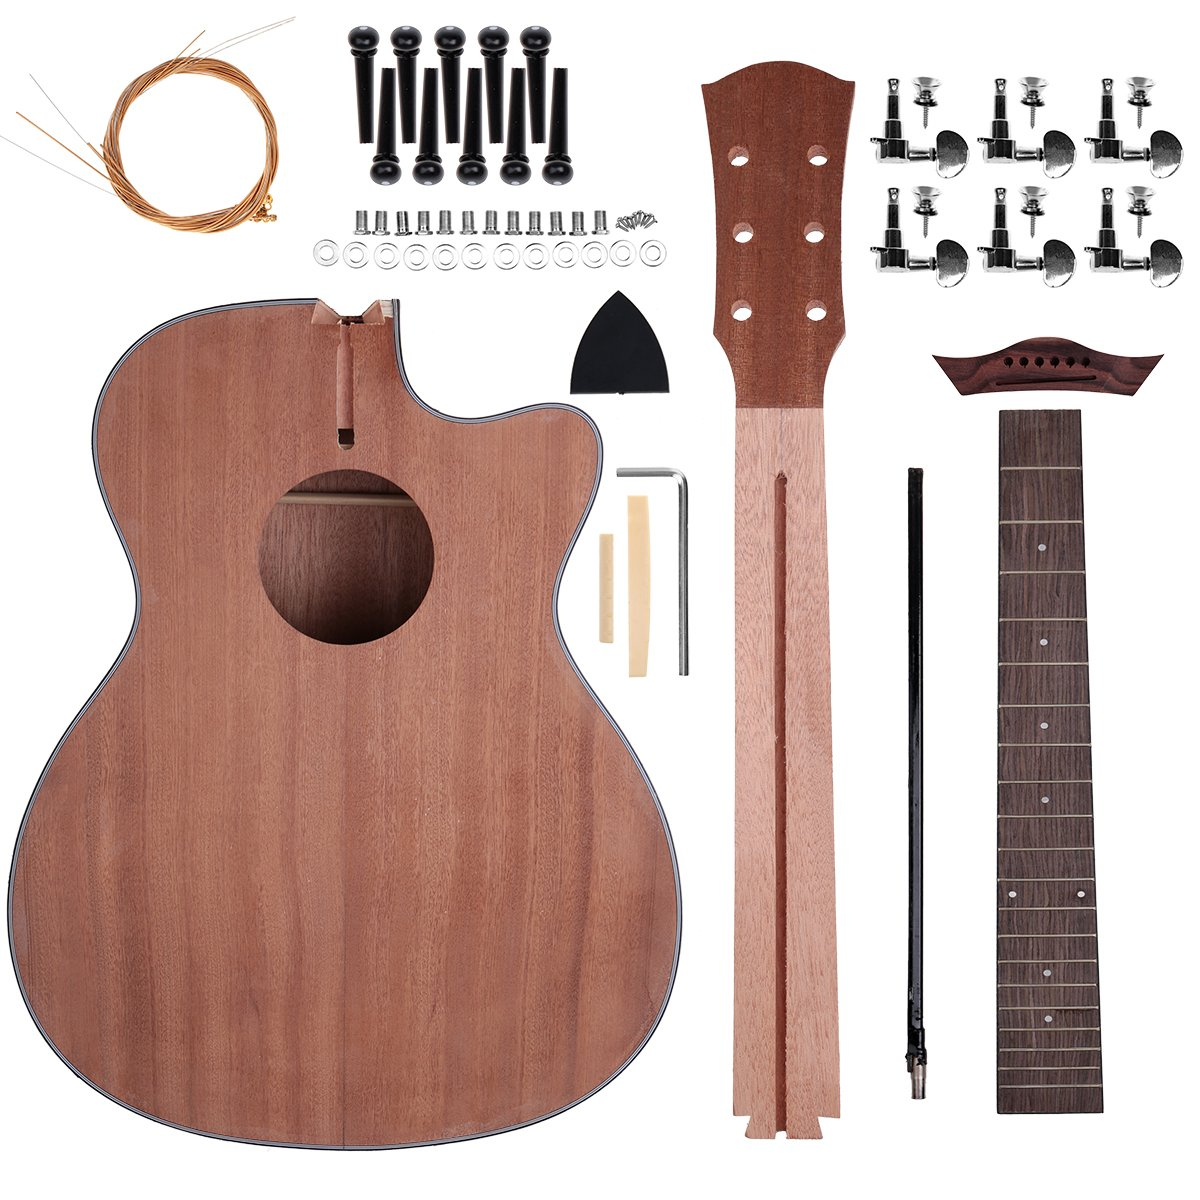 Acoustic Steel Strings Guitar Make Your Own Guitar Diy Guitar Kits 40 Inch For Music Lover Sapele